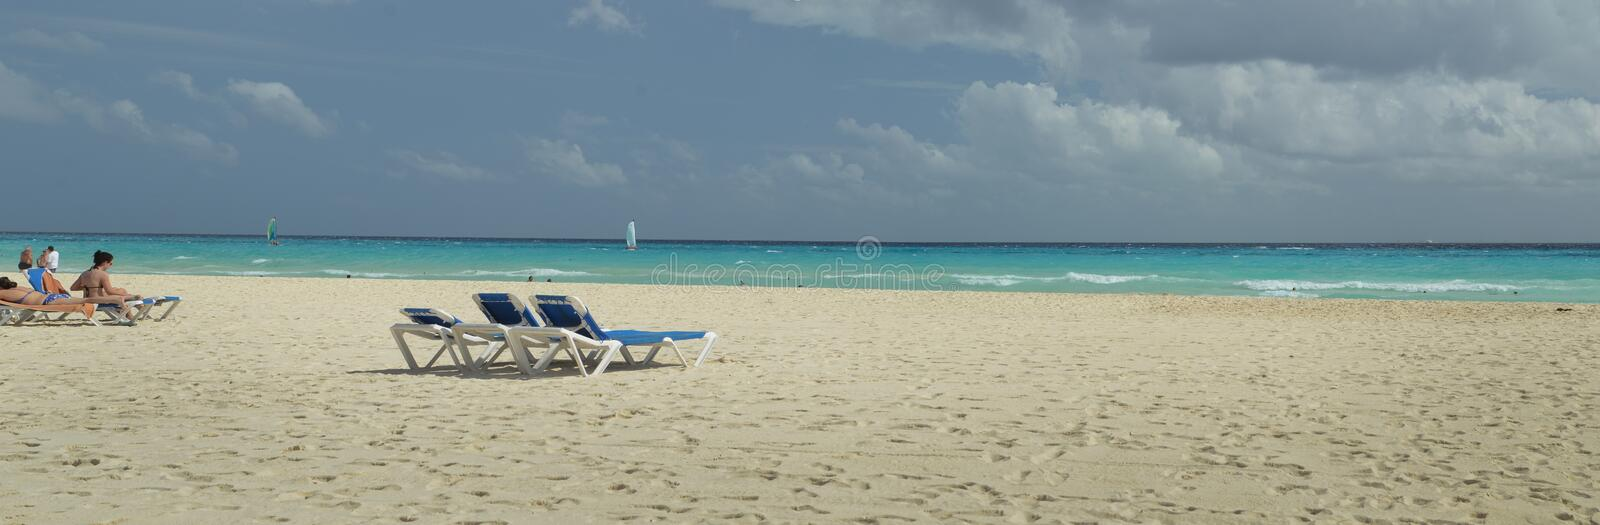 Beach in Mexico stock image